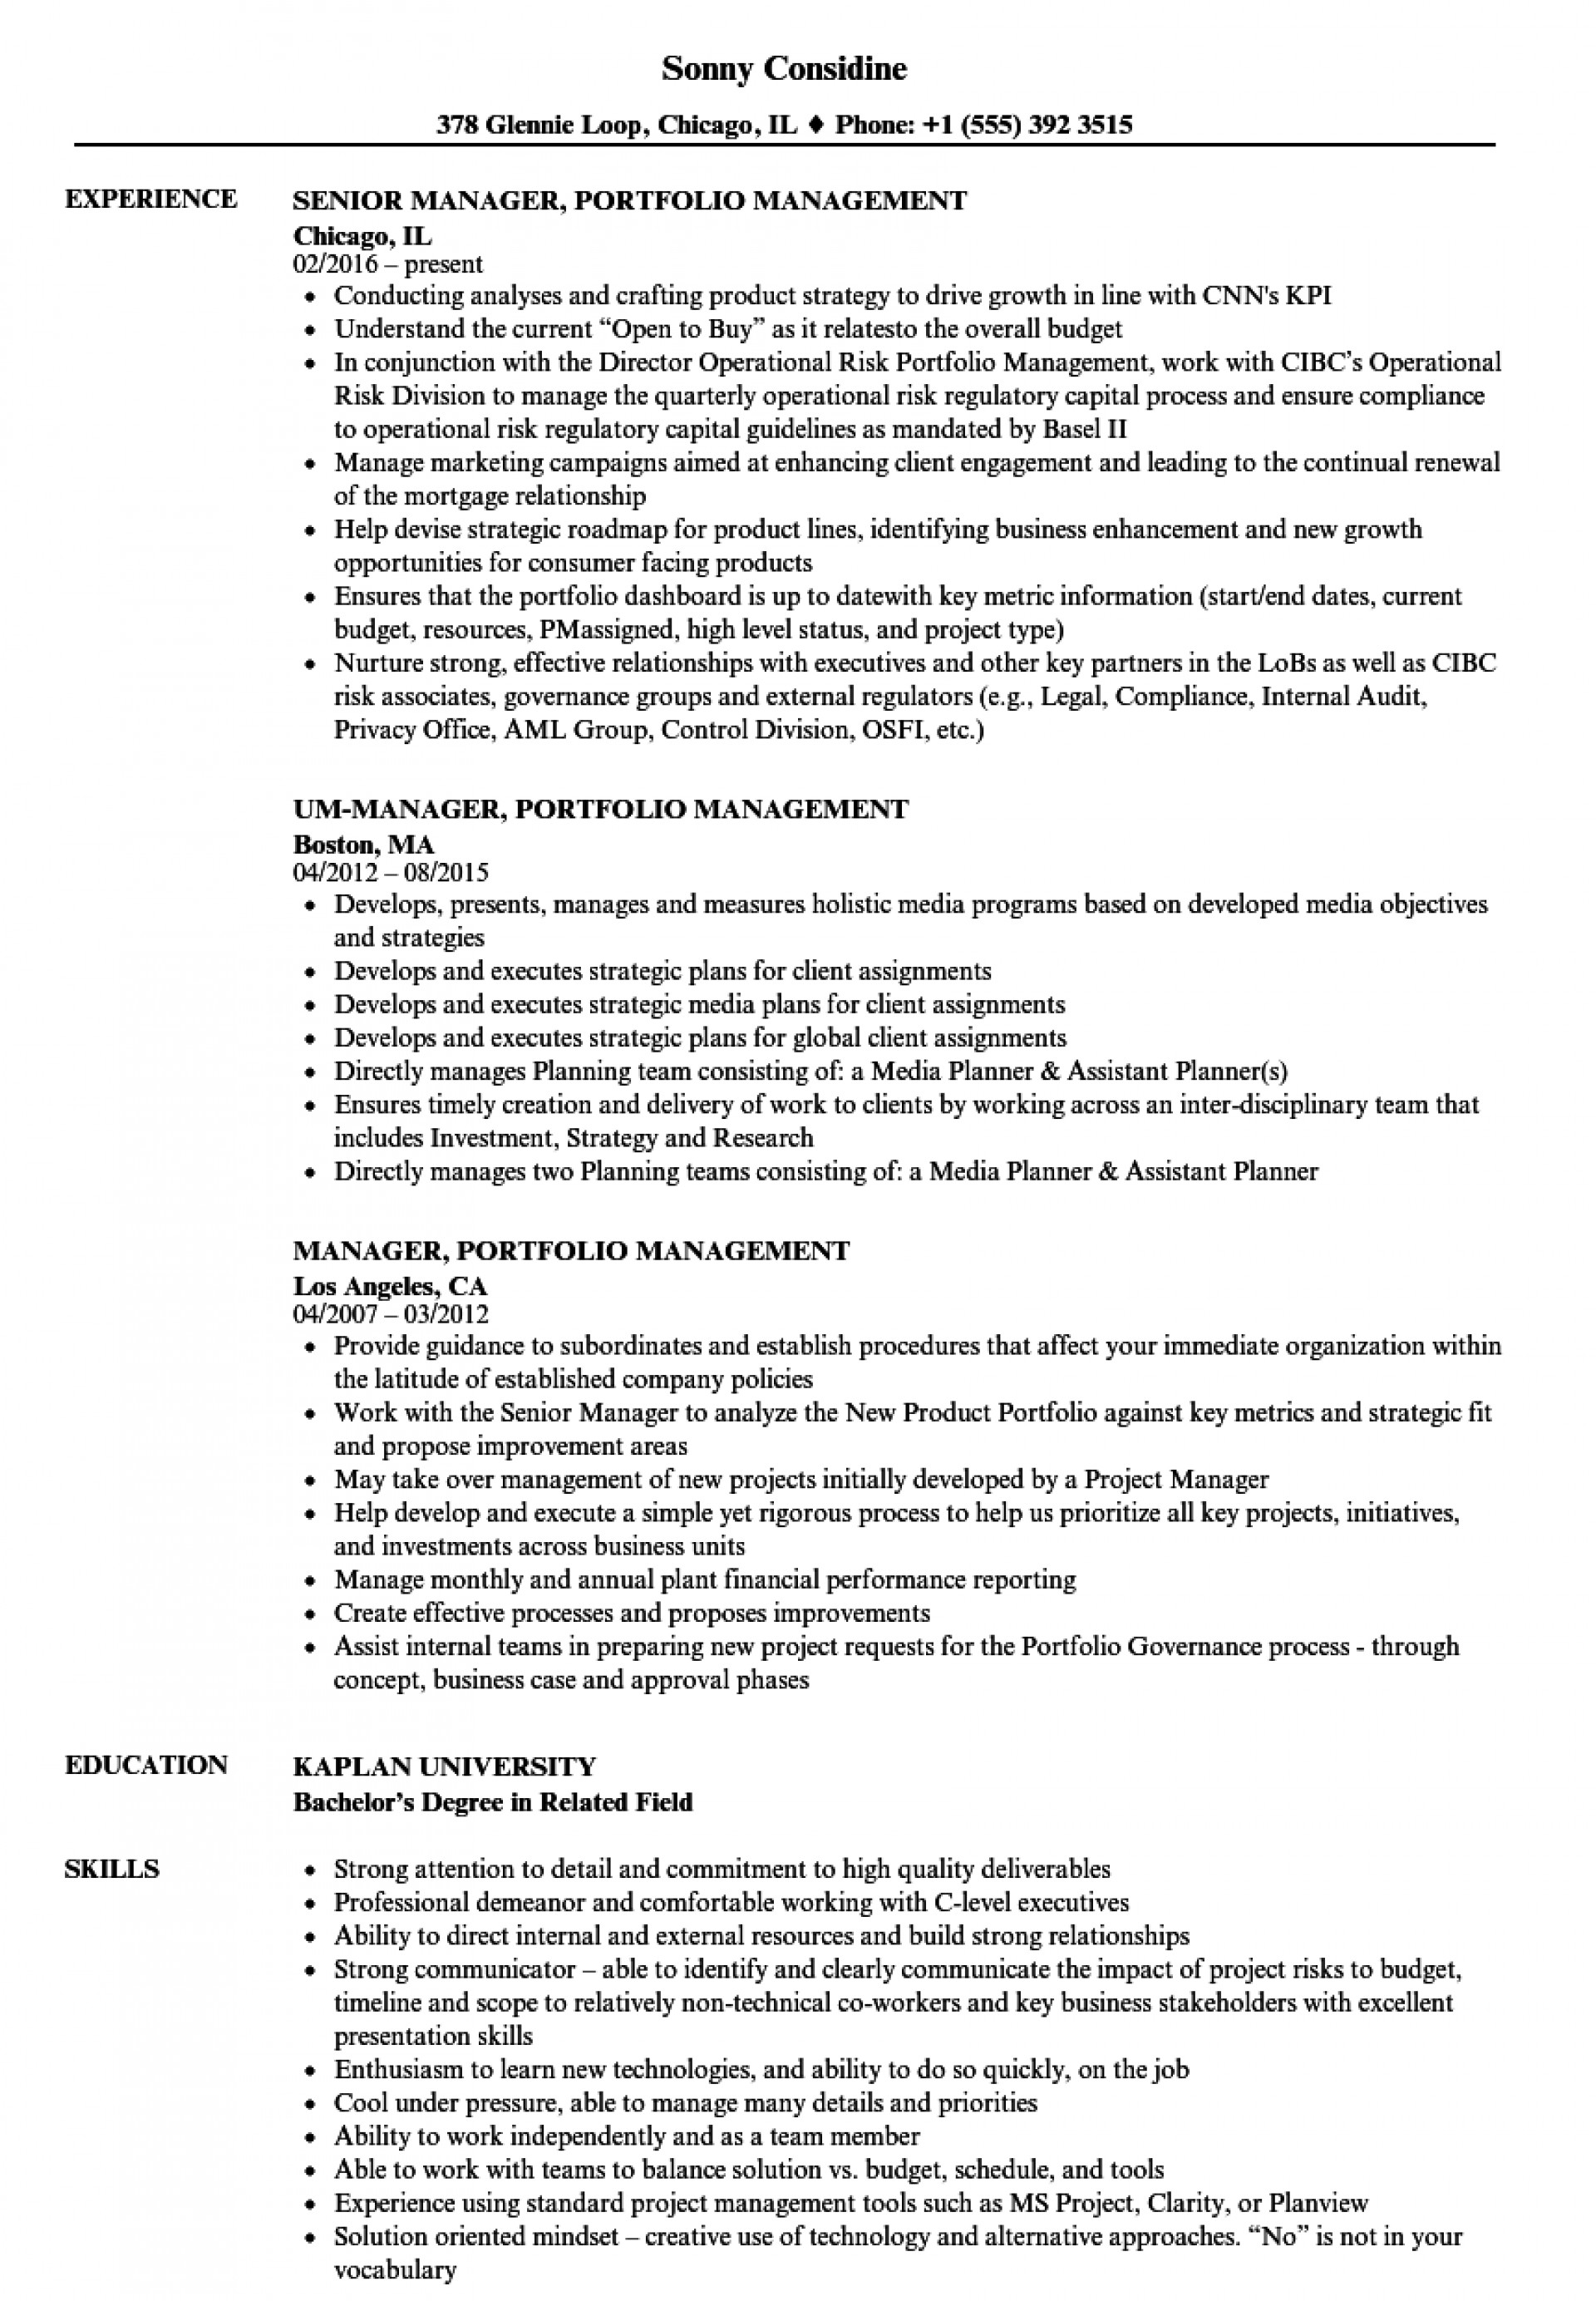 015 Why Do You Want To Teacher Essay Example Manager Portfolio Management Resume Impressive Be A Pdf Become An English Home Based Online 1920